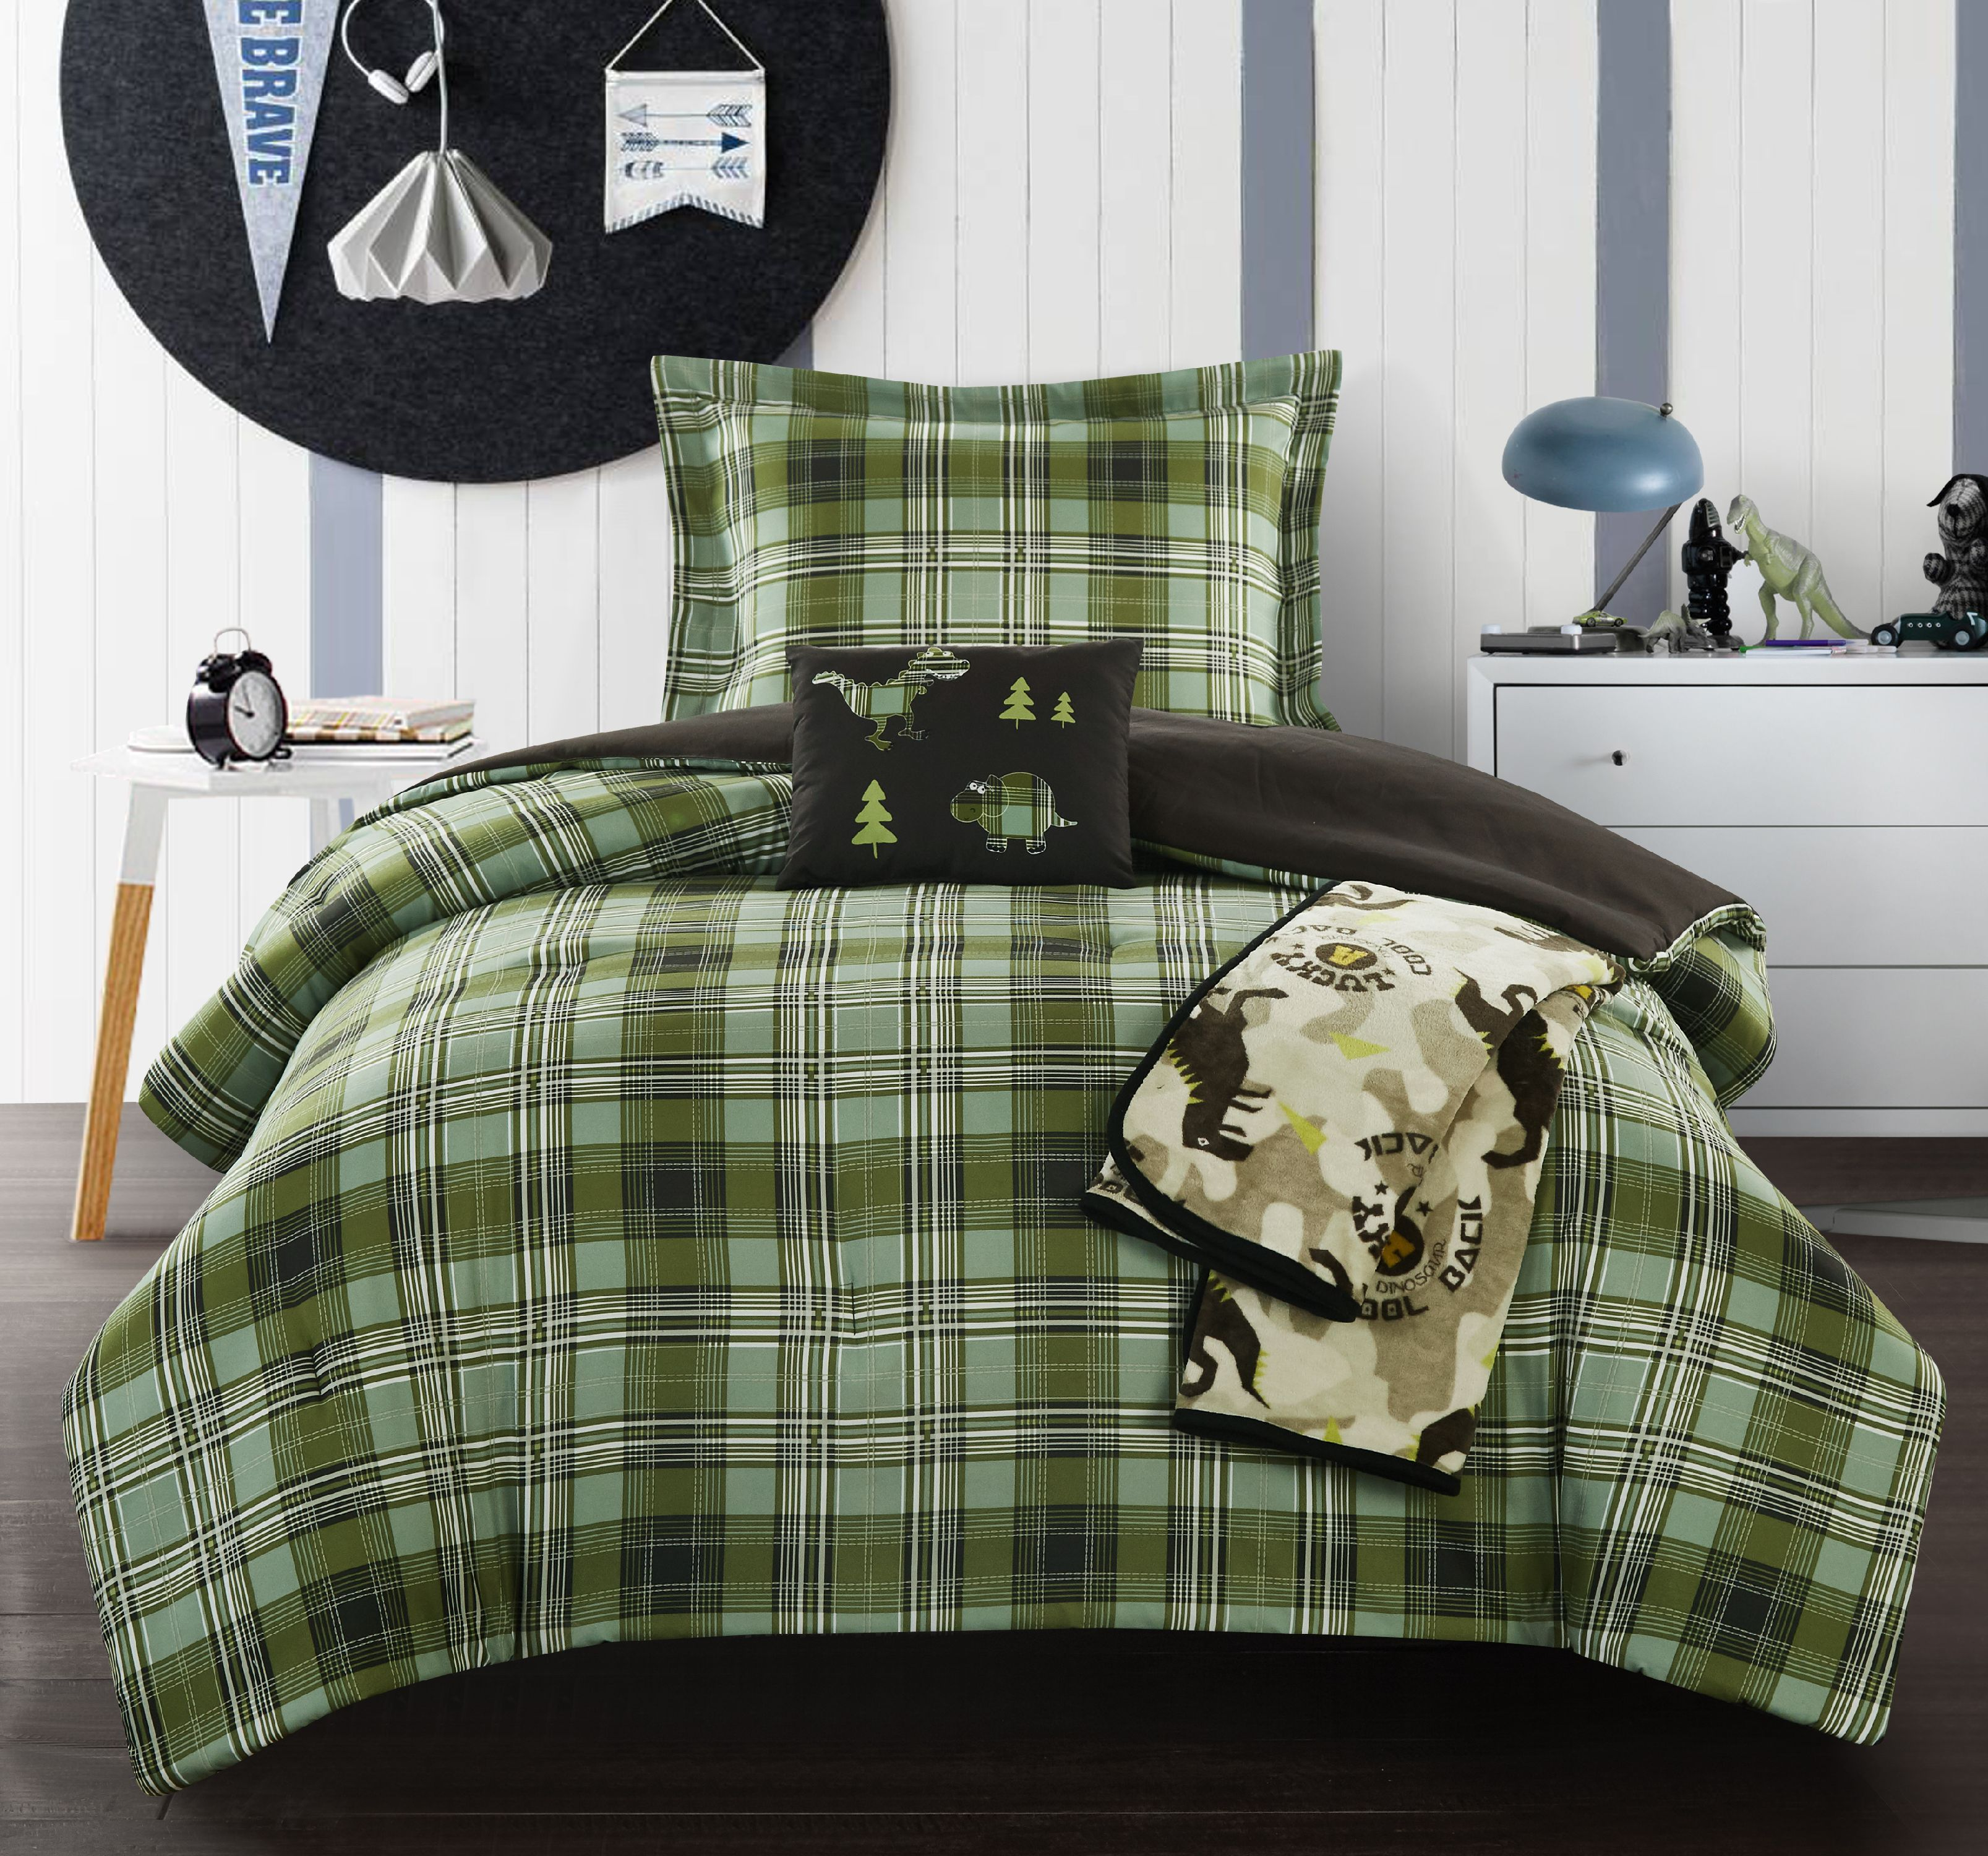 Chic Home Garb 4 Piece Patchwork Dinosaur Theme Youth Comforter Set